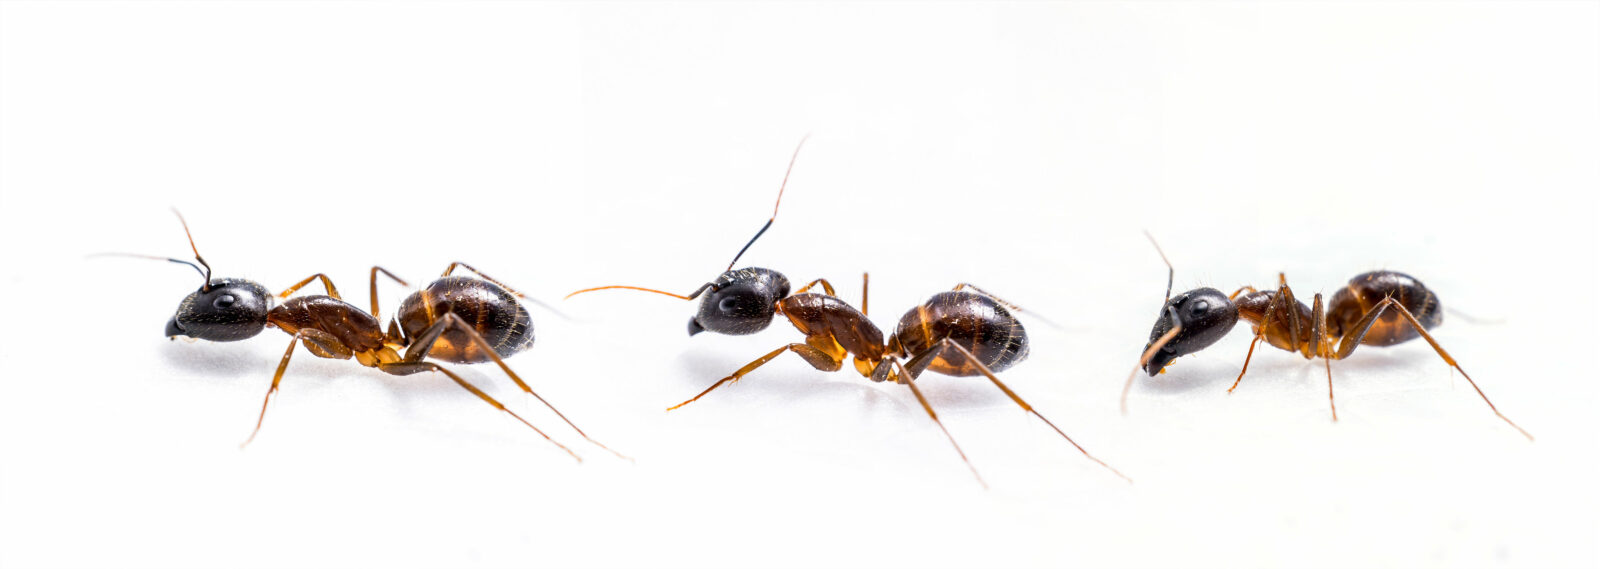 Pest Control : Pest Control Service or Ants In CT